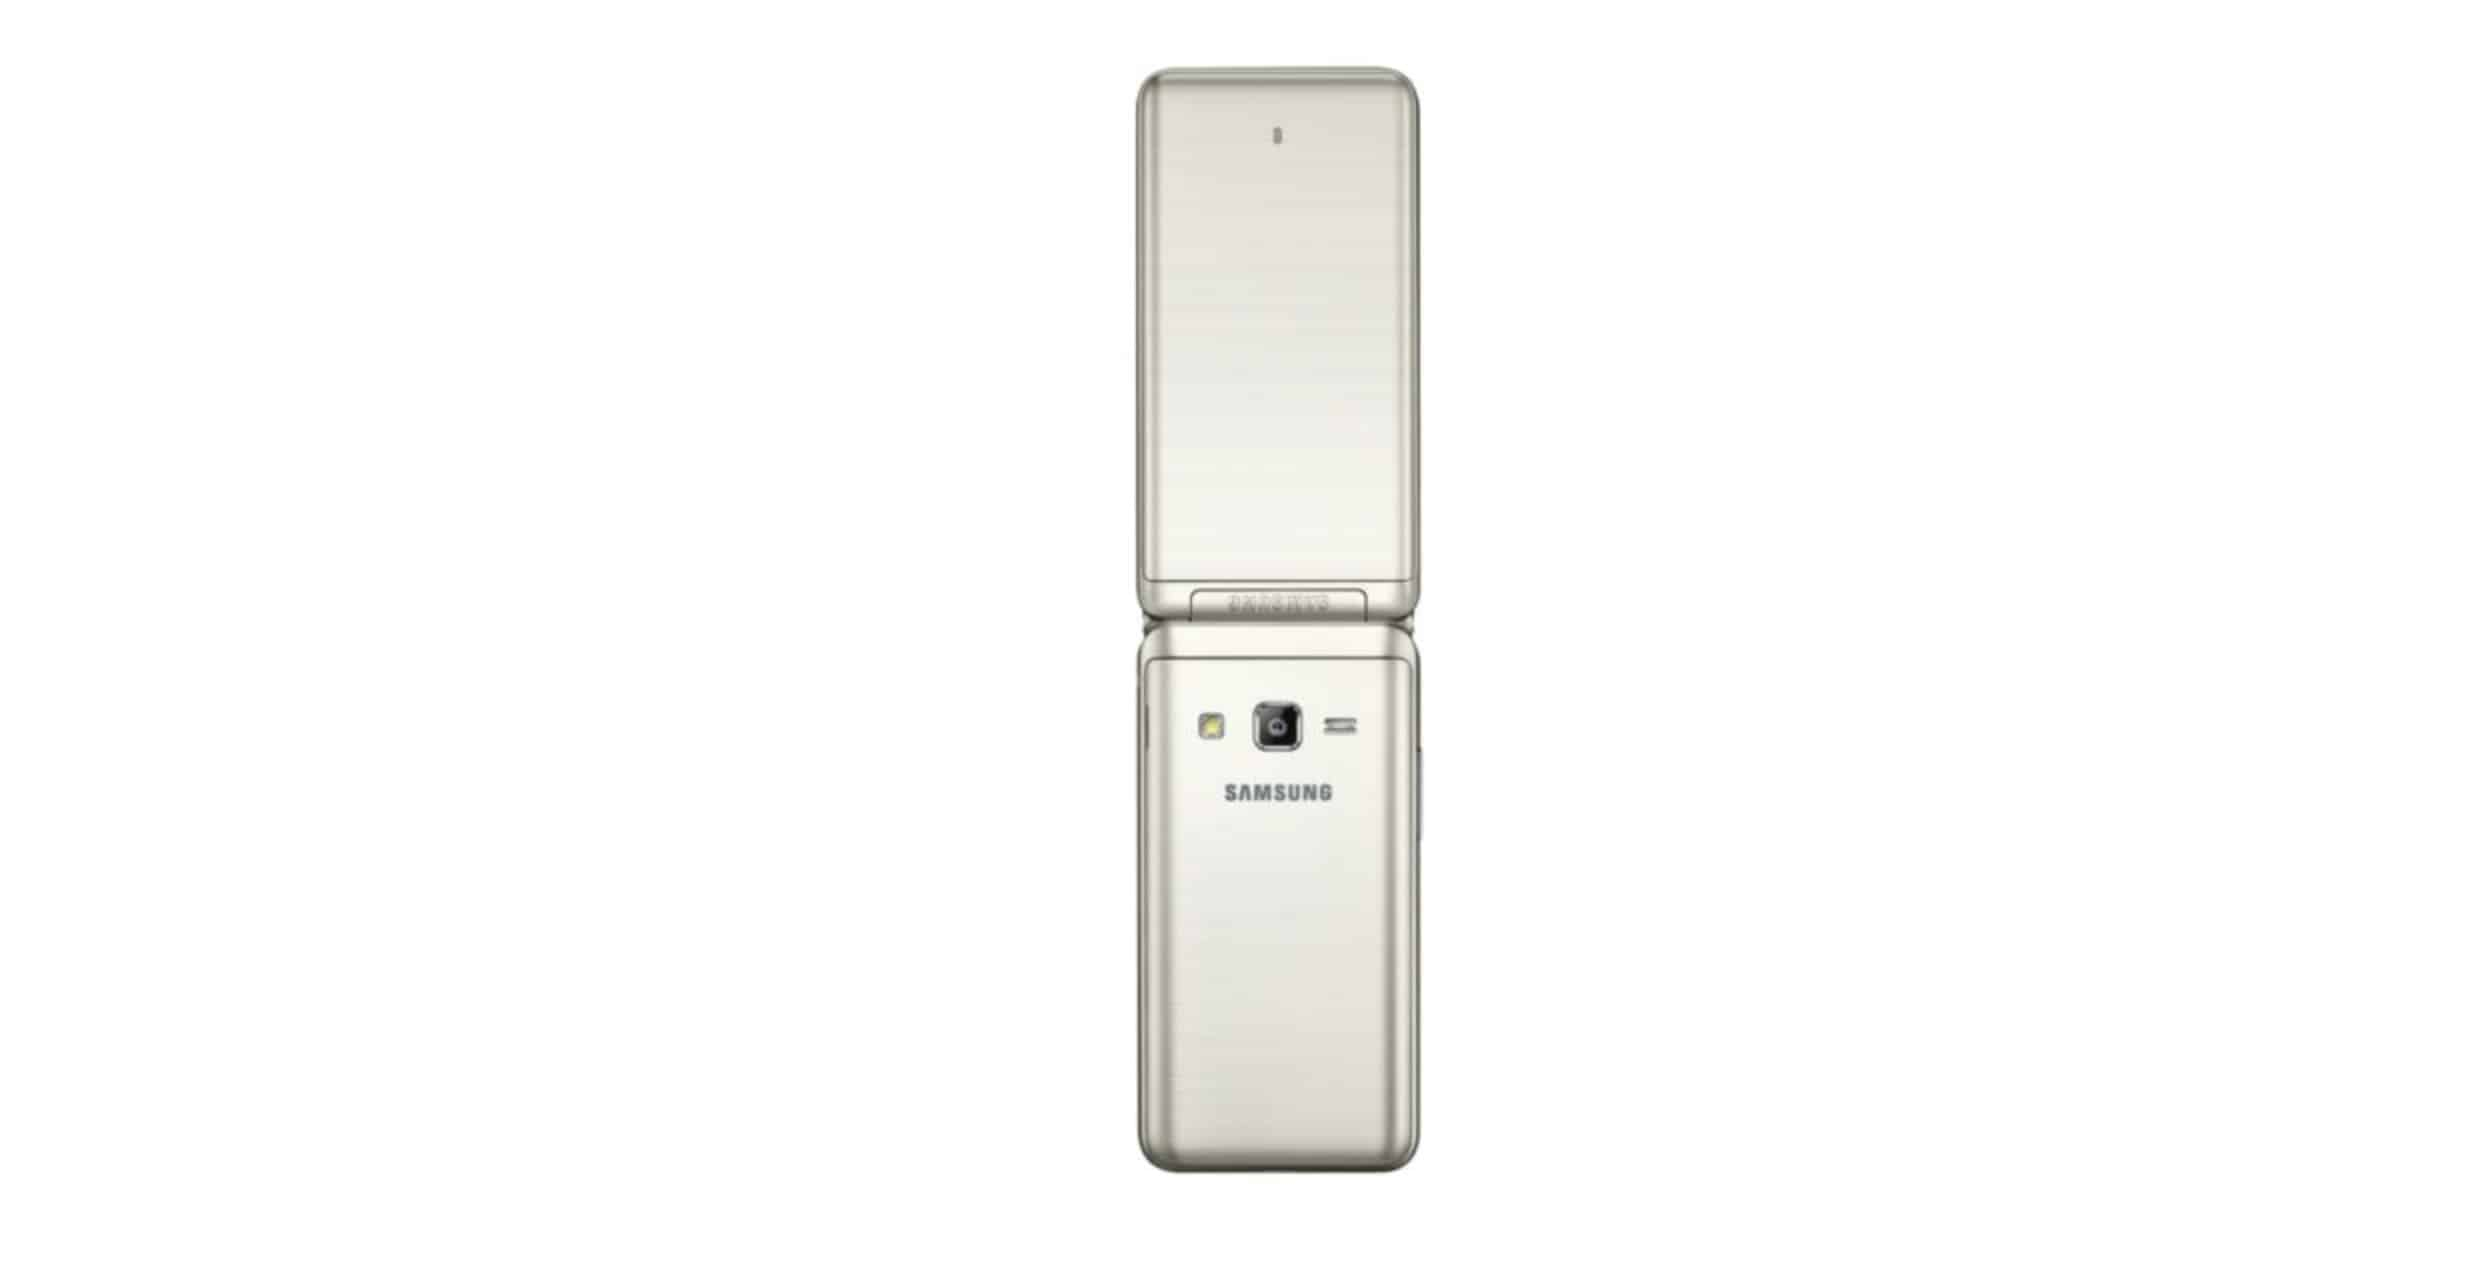 Samsung Galaxy Folder 2 SM G1600 06